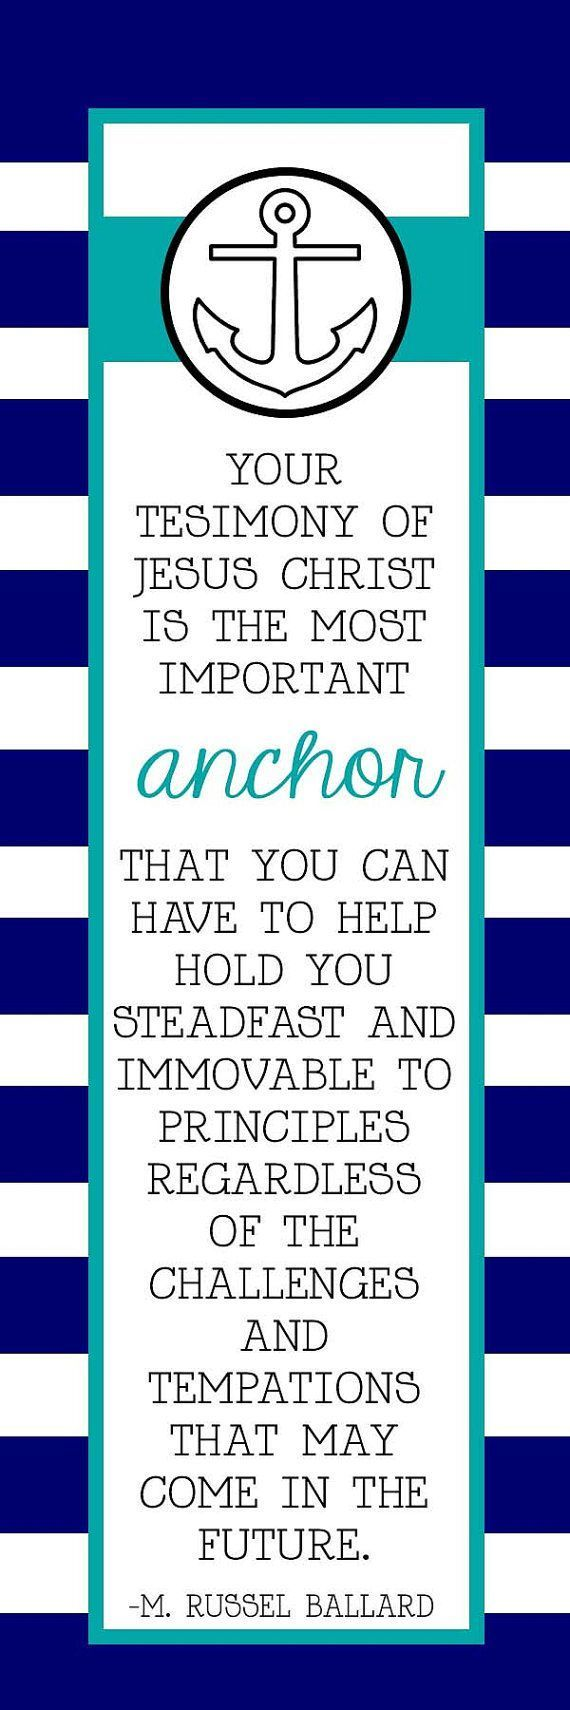 Come Follow Me (MAY) How can I strengthen my testimony? LDS Quote Anchor Bookmark by HayashiPhotography on Etsy #churchitems